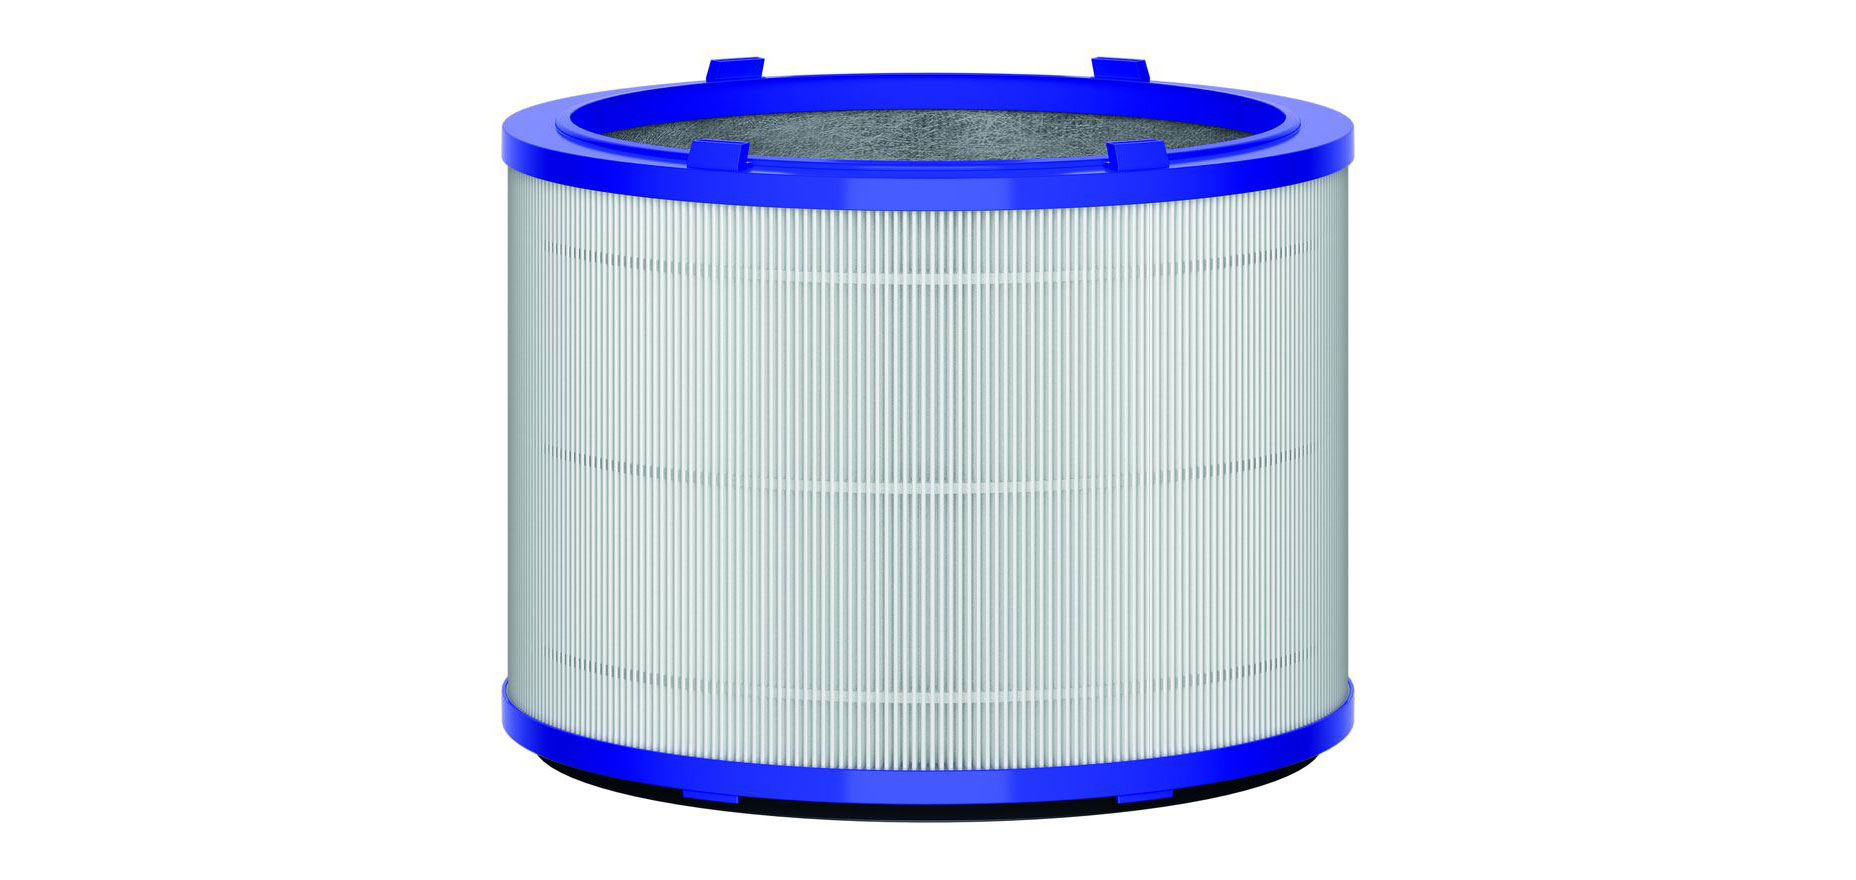 Dyson-Pure-Cool-Link-Filter